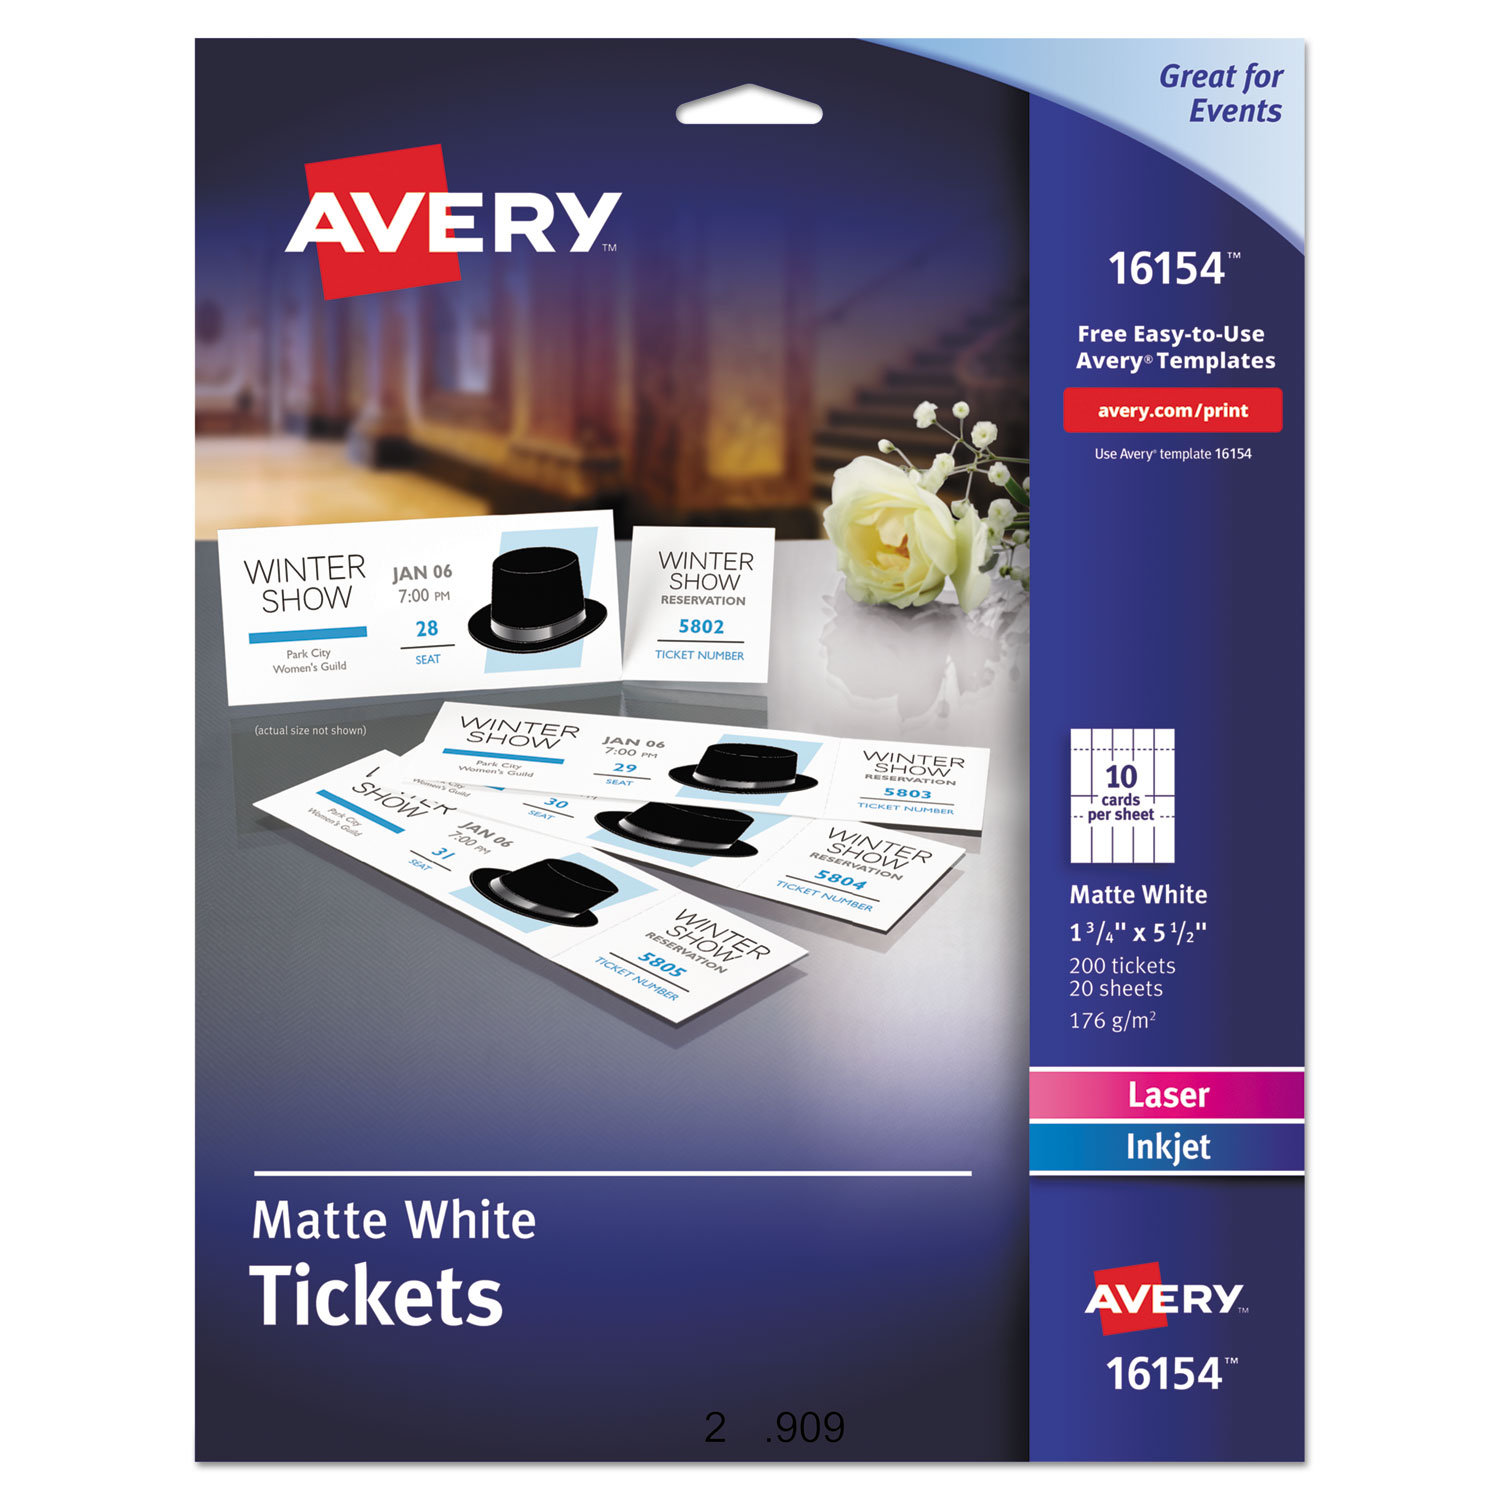 Printable Tickets Wtear Away Stubs By Avery Ave16154